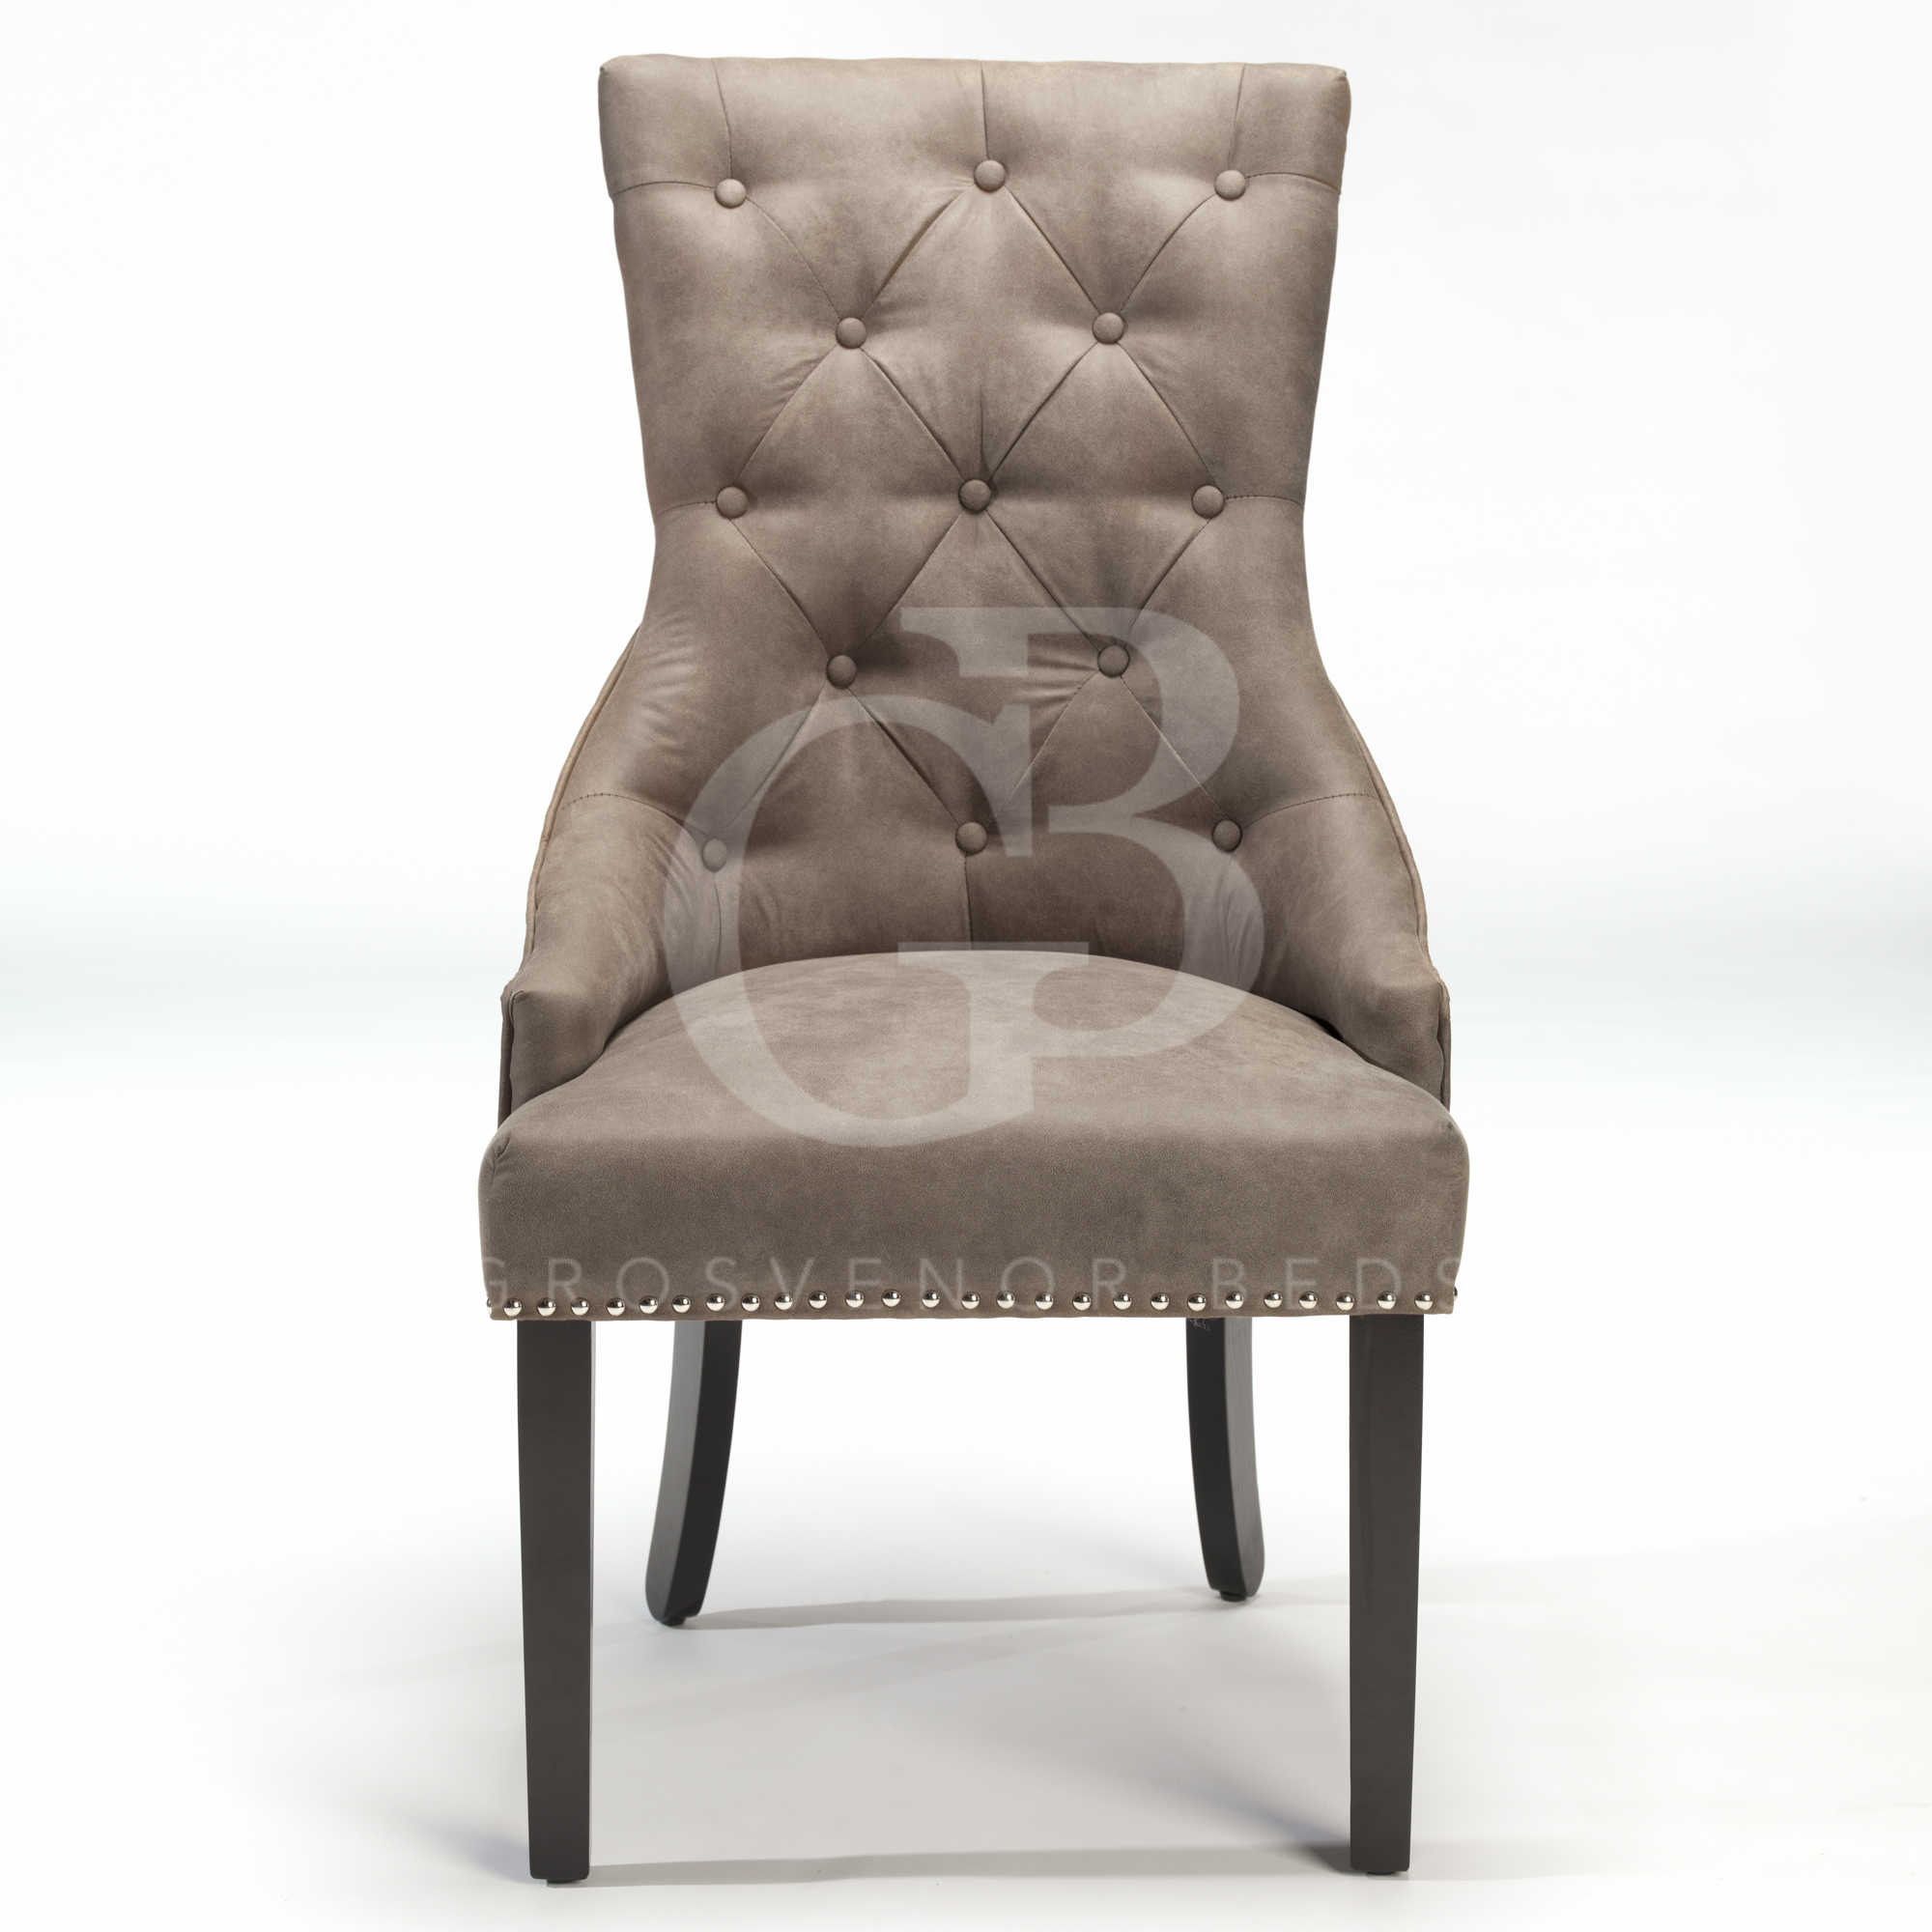 upholstered scoop back dining chairs support chair for bed new buttoned with studs